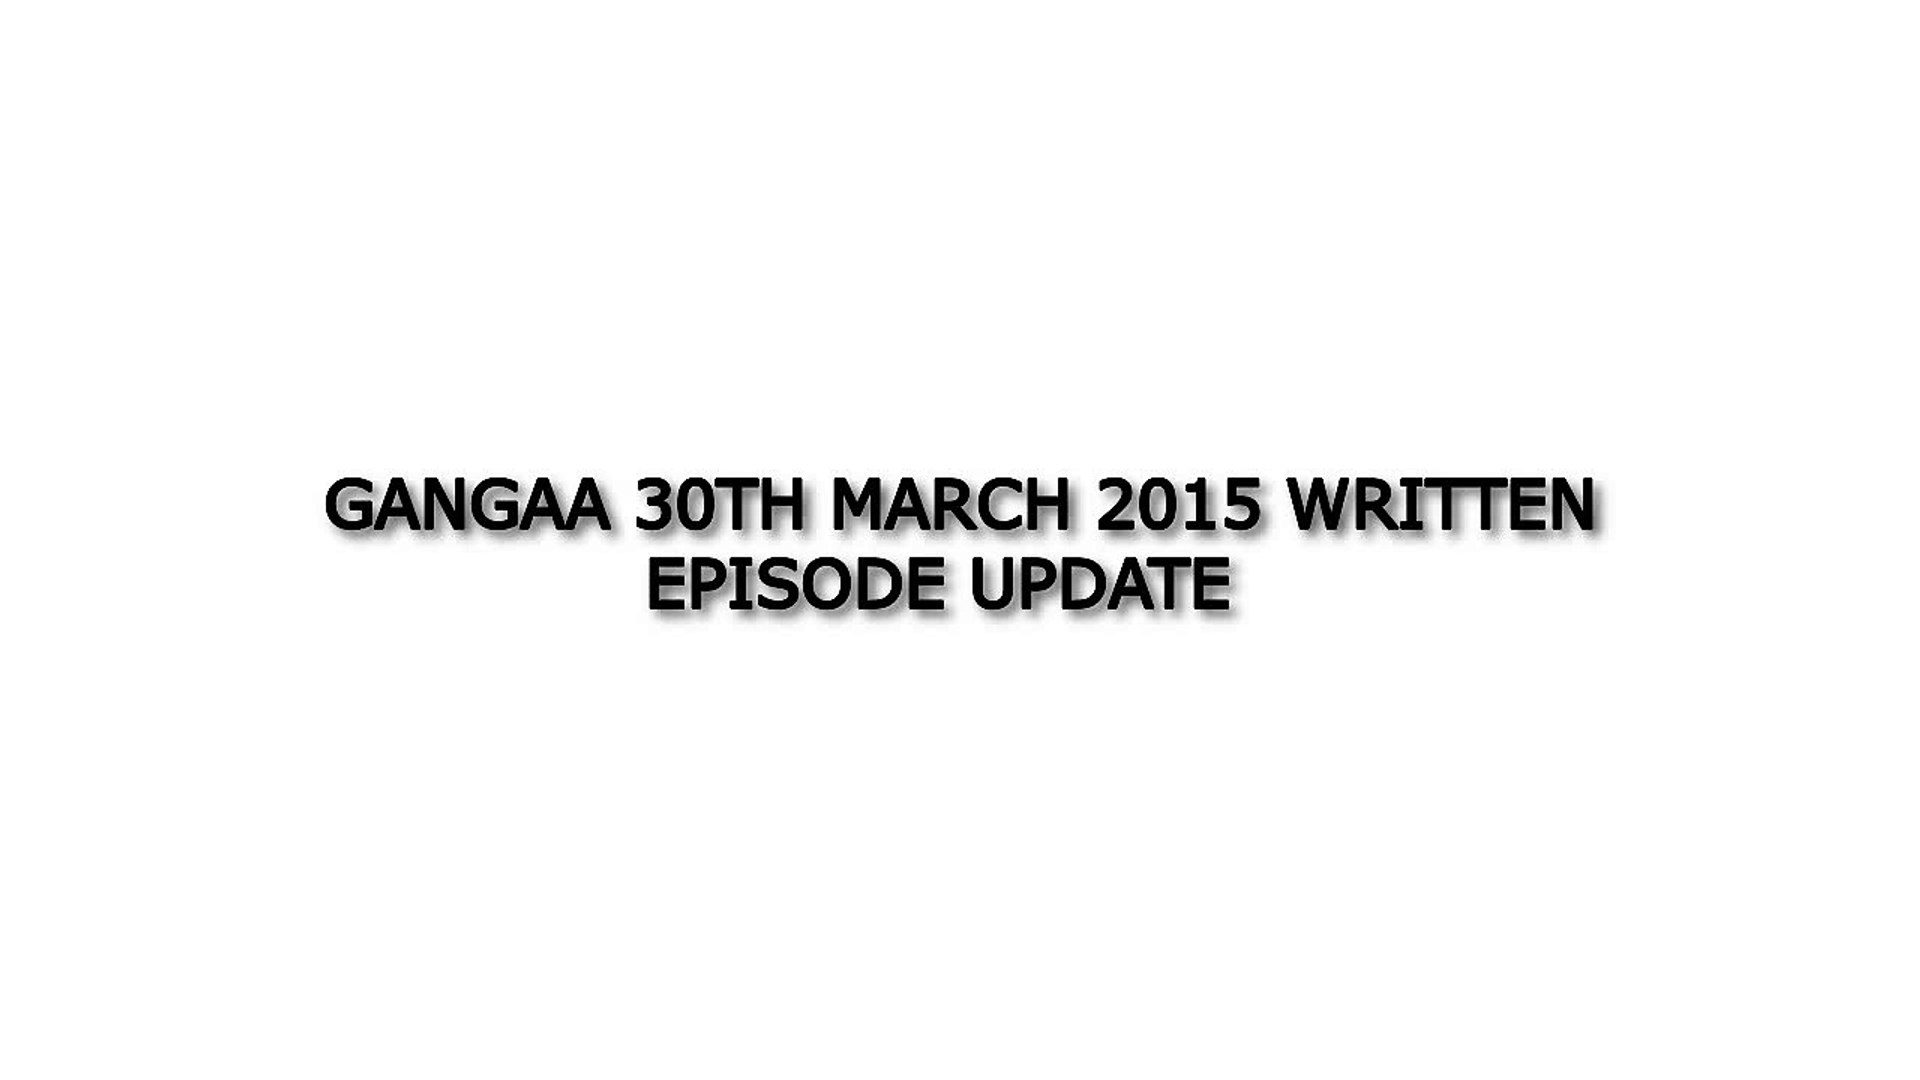 Gangaa 30th March 2015 Written Episode Update